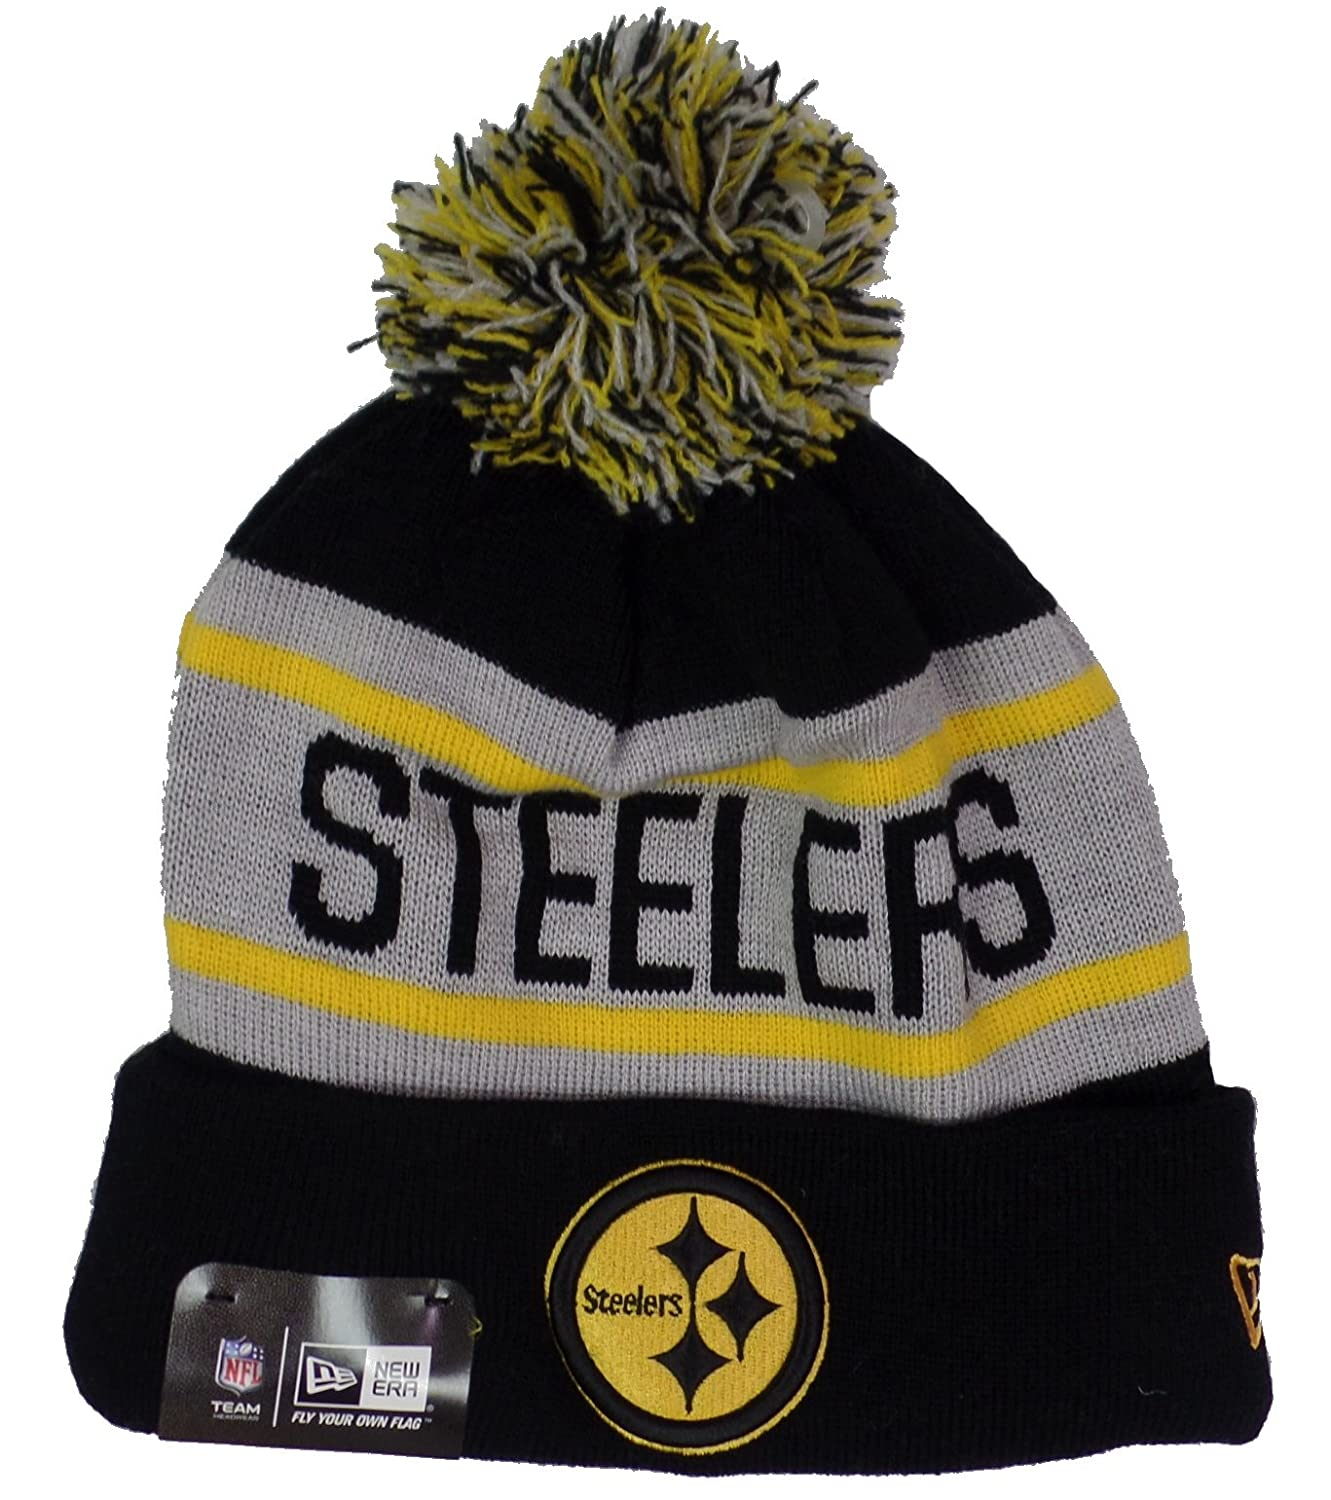 a9f9c1446 Amazon.com   New Era Men s Biggest Fan Redux Pittsburgh Steelers Black Team  Black Hat One Size Fits All   Sports   Outdoors